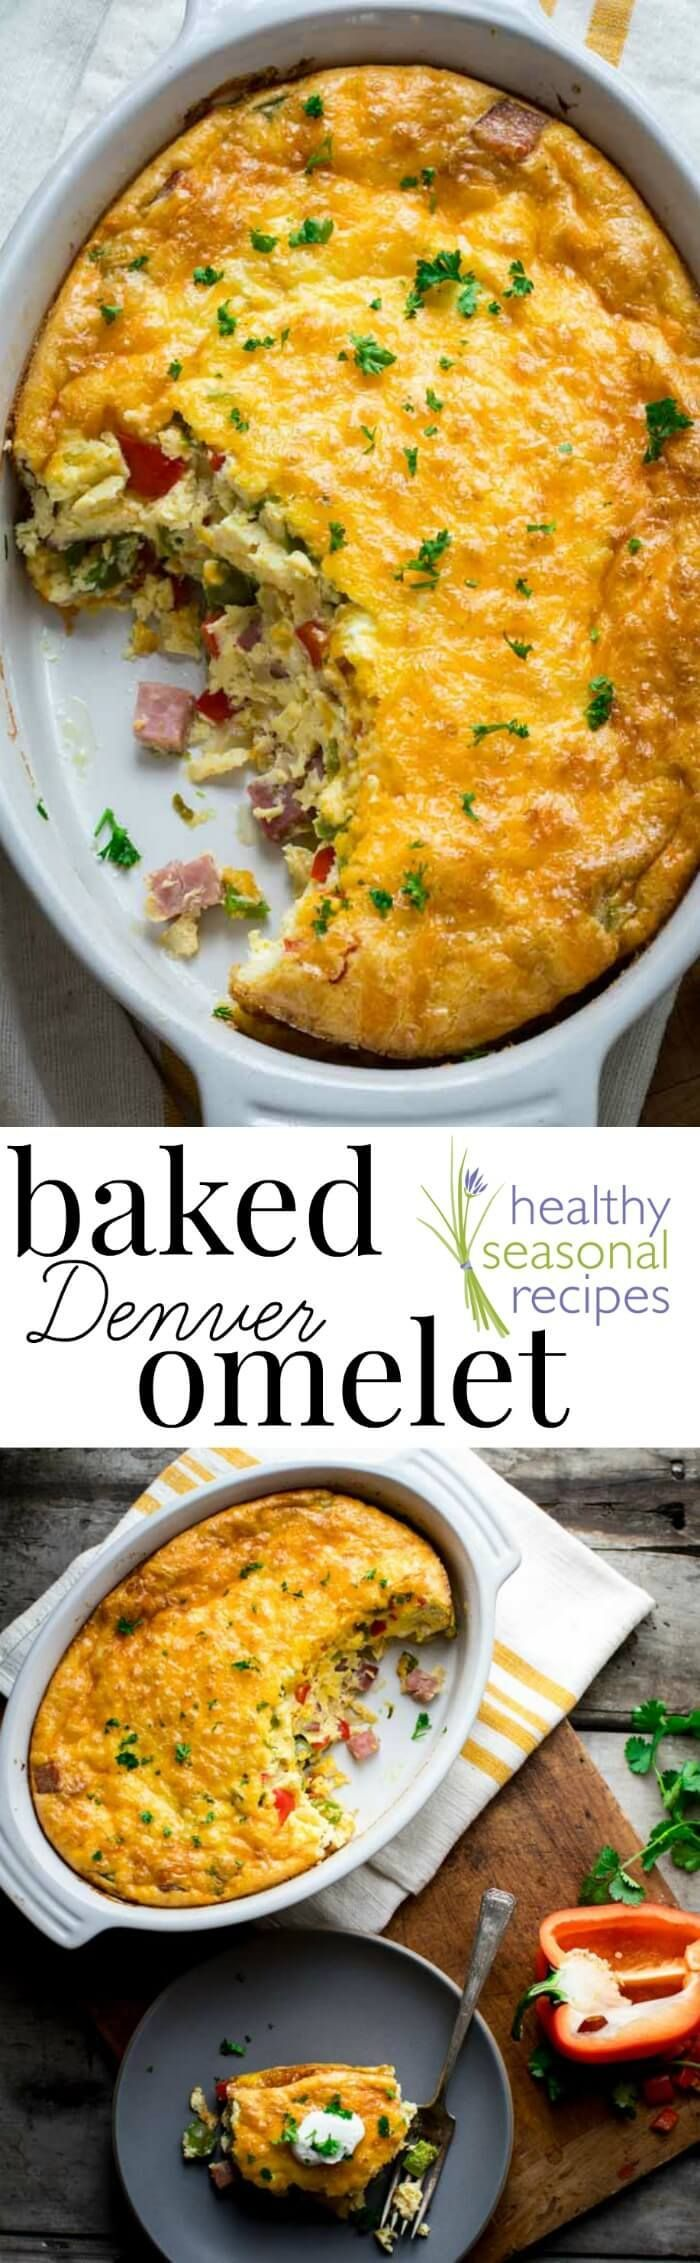 This easy and family friendly Baked Denver Omelet serves 8 and is ready in just 45 minutes! It's great reheated and even makes an awesome lunch or dinner.